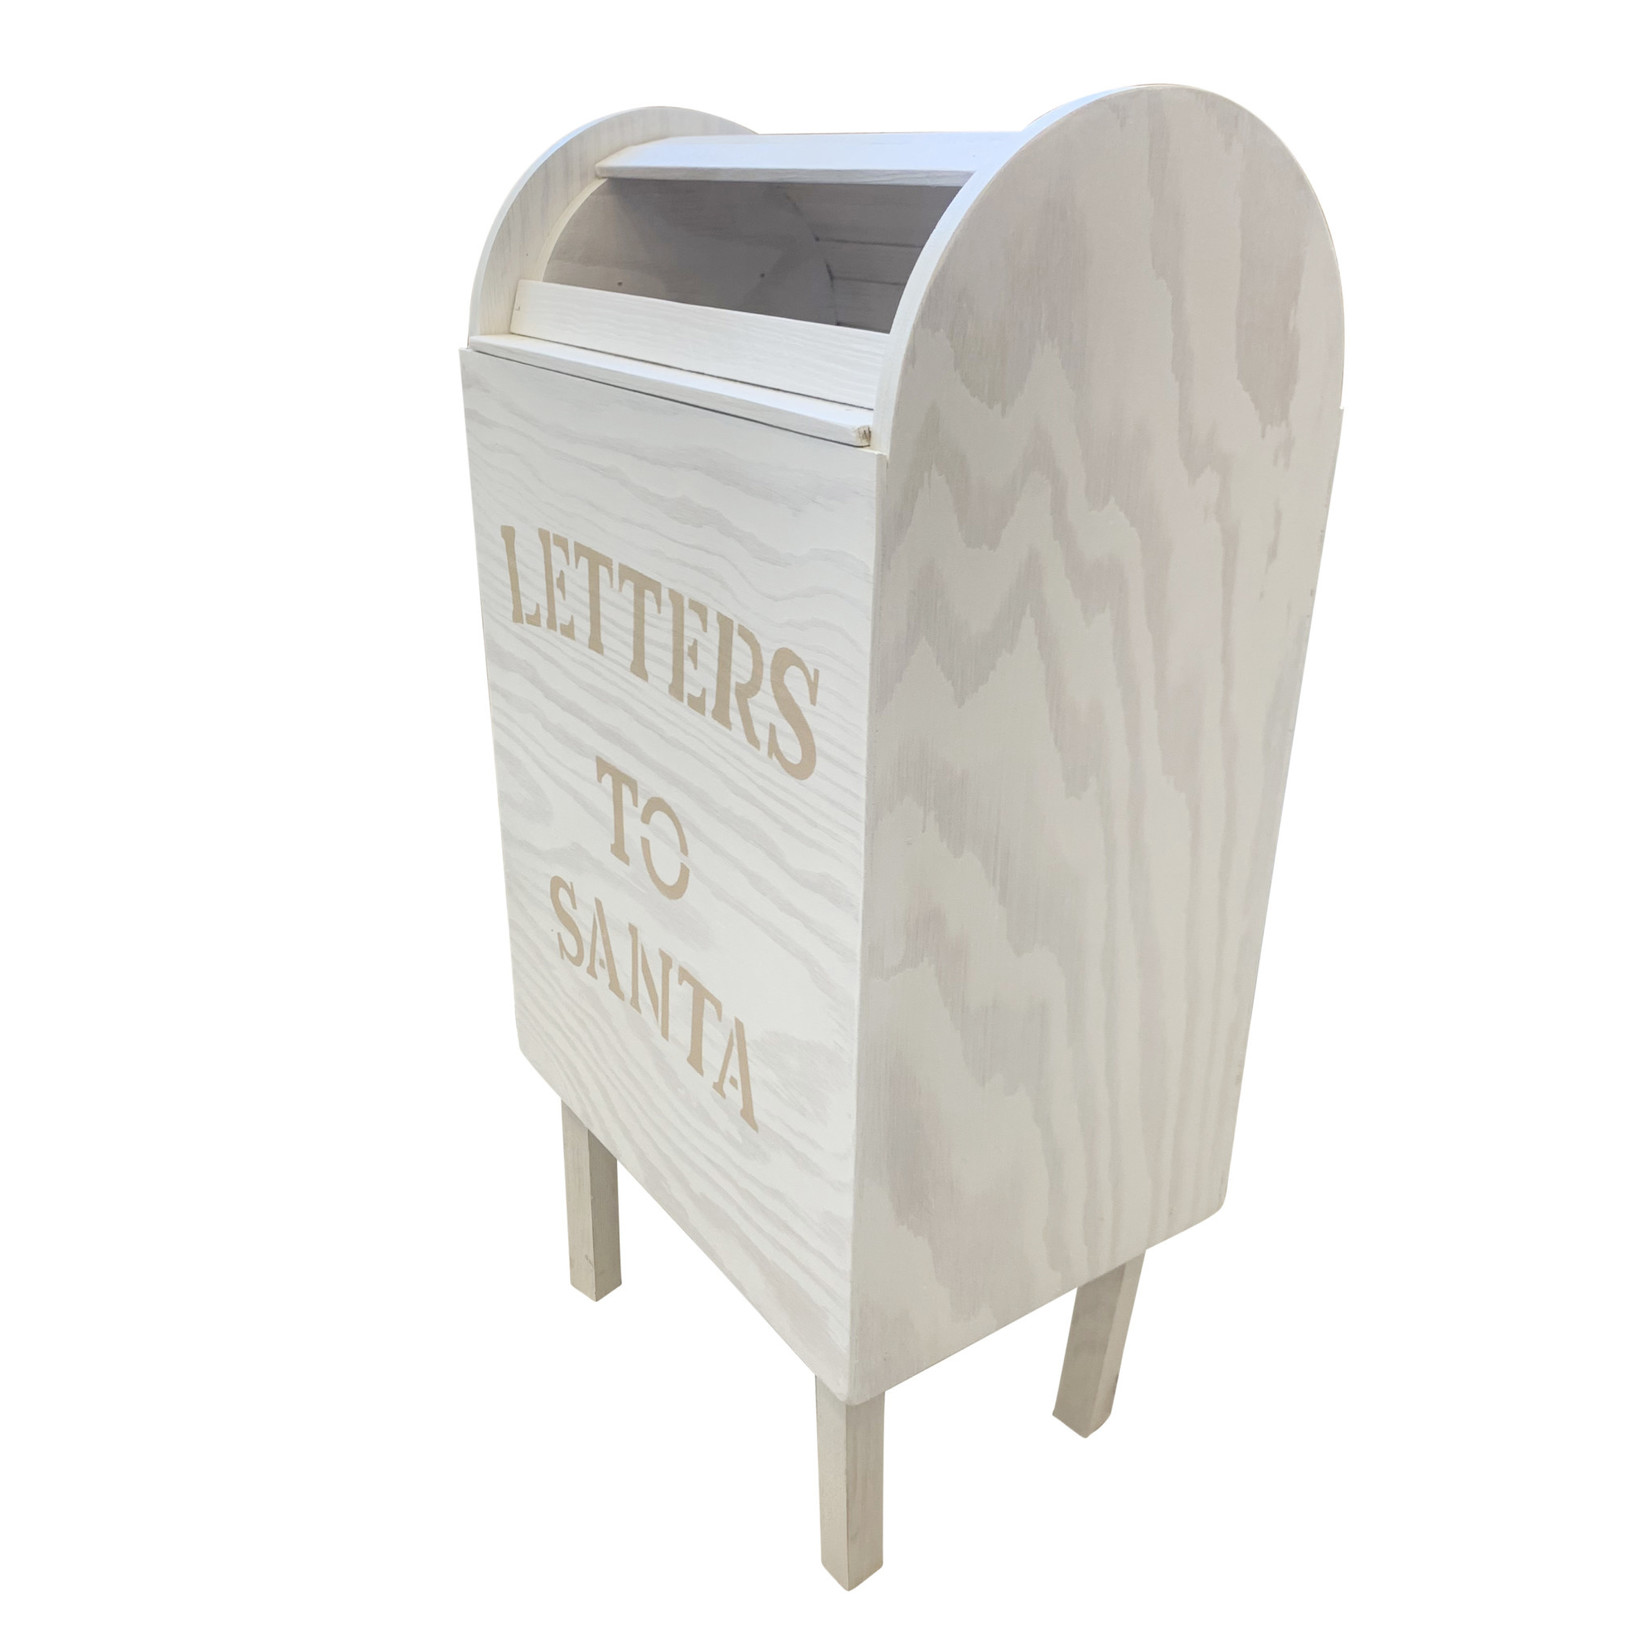 Wyld Blue Home Letters to Santa Mailbox